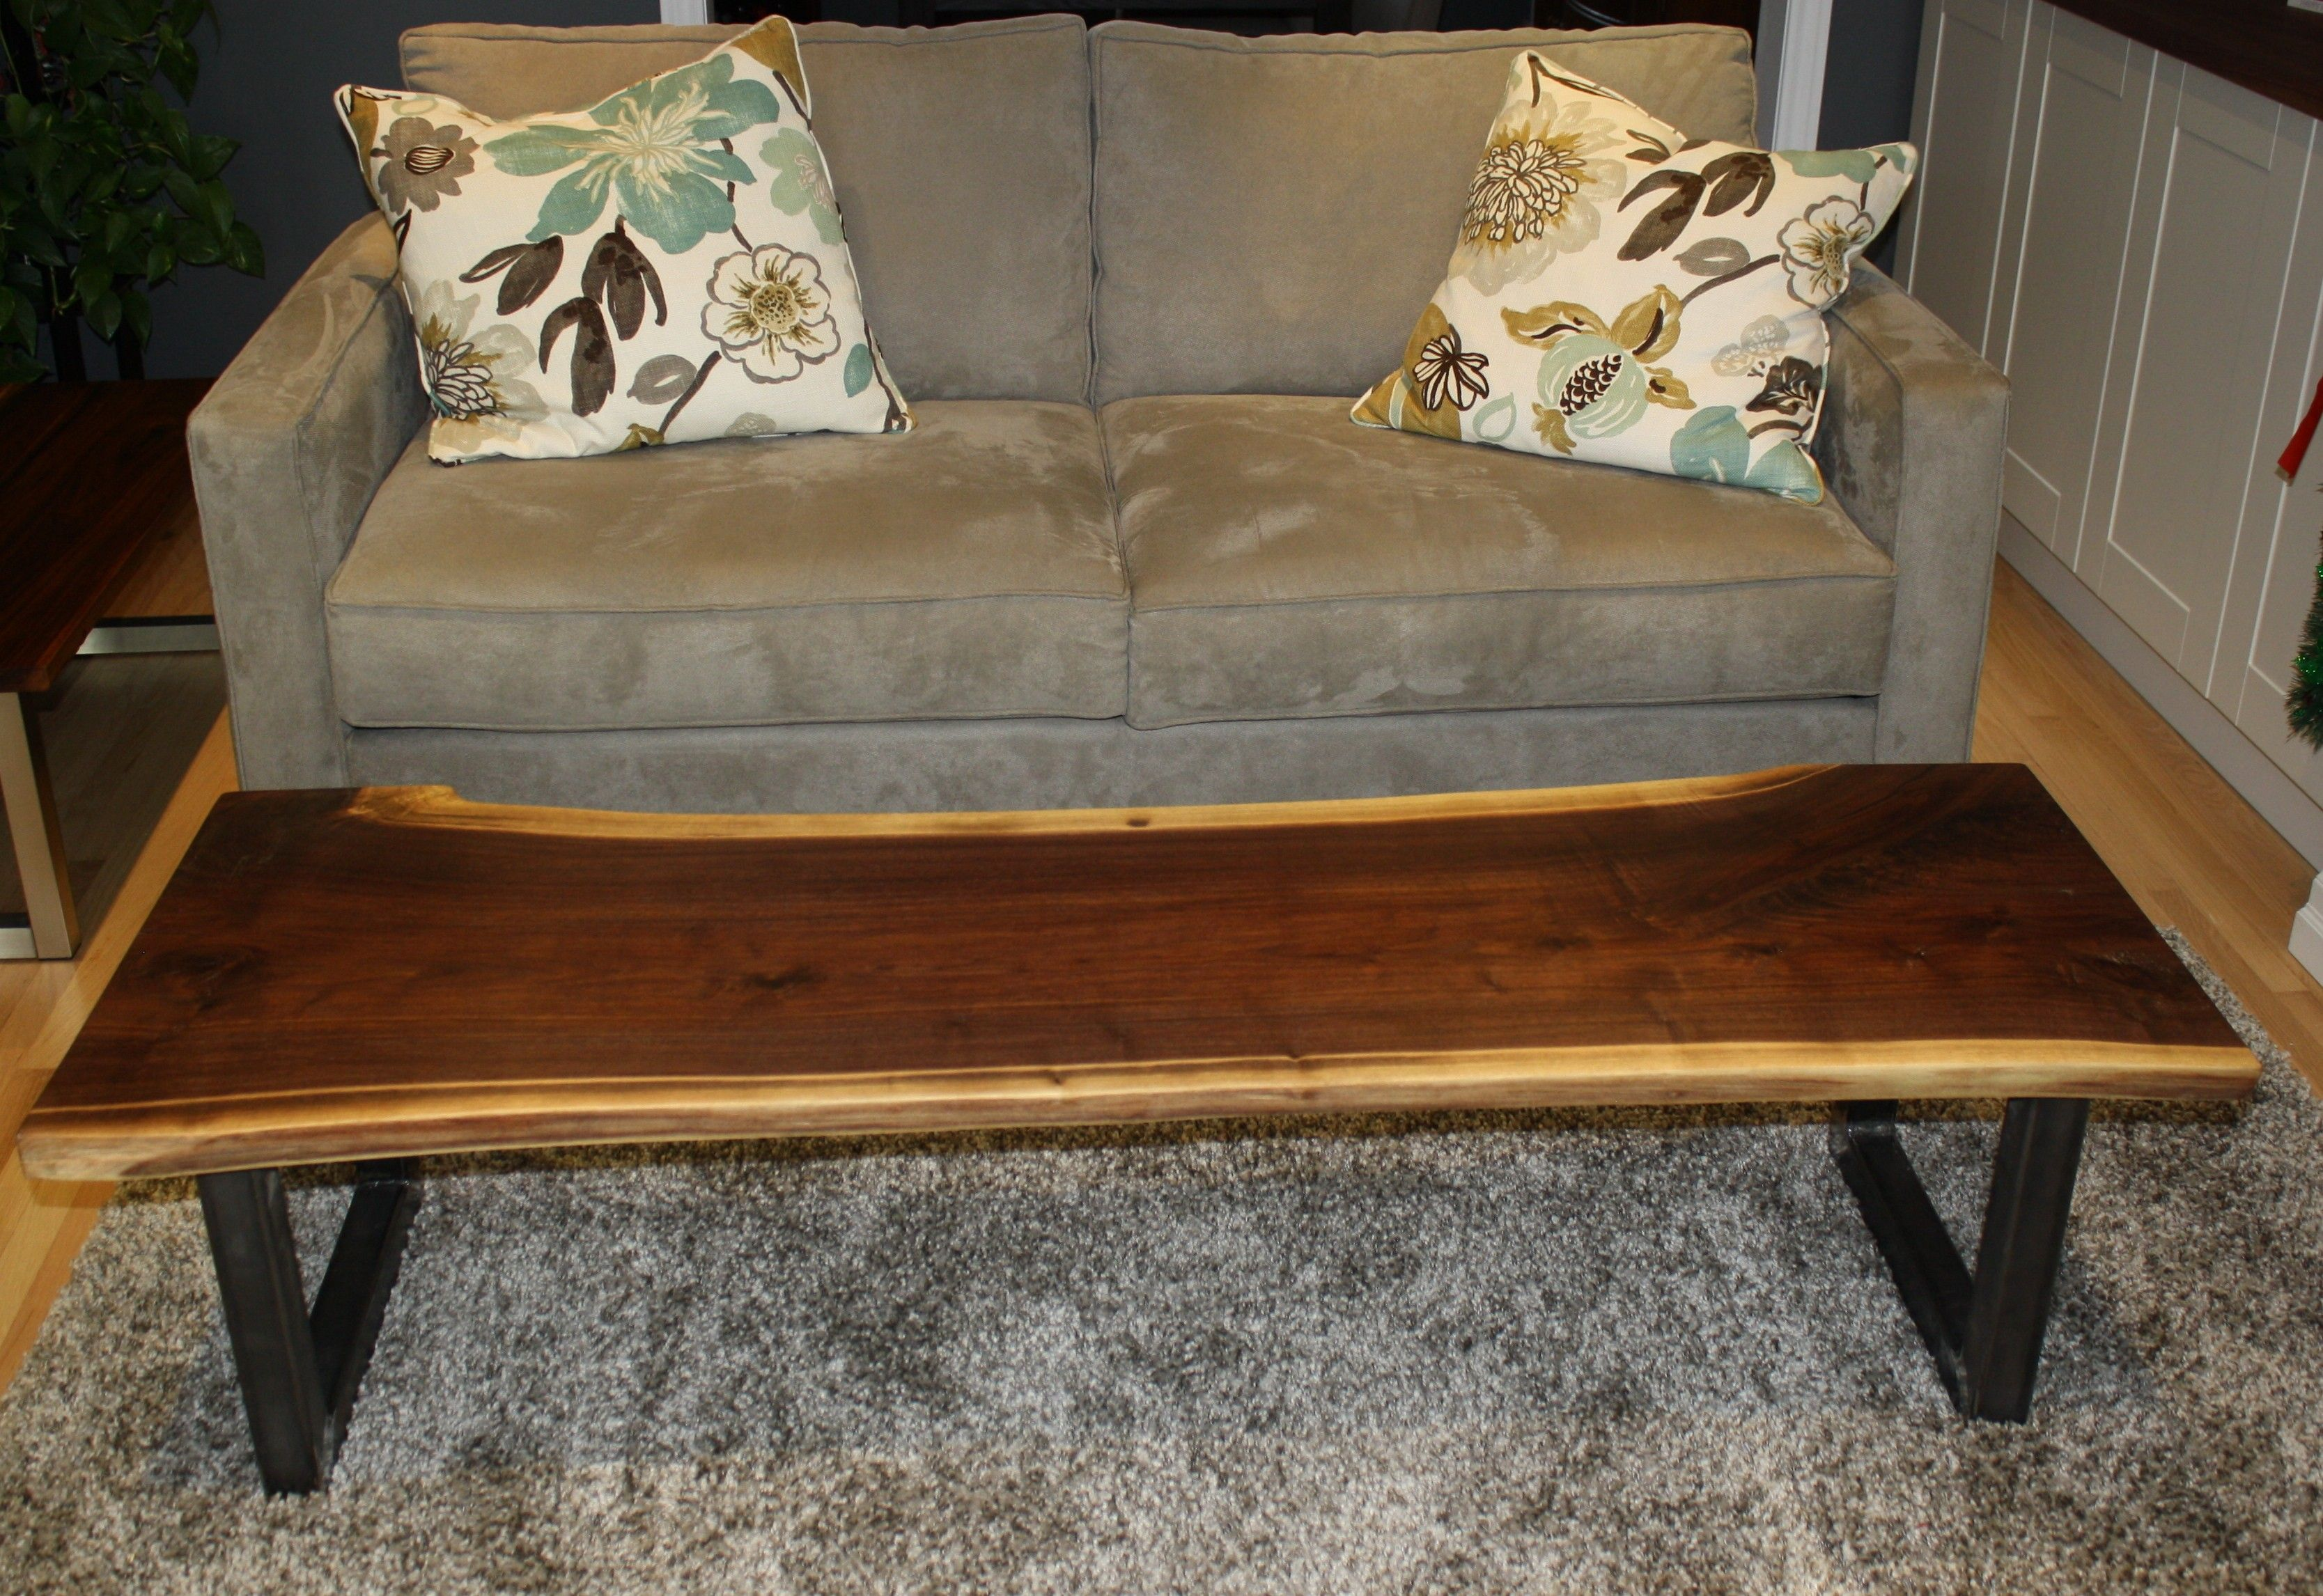 live edge walnut coffee table $1100